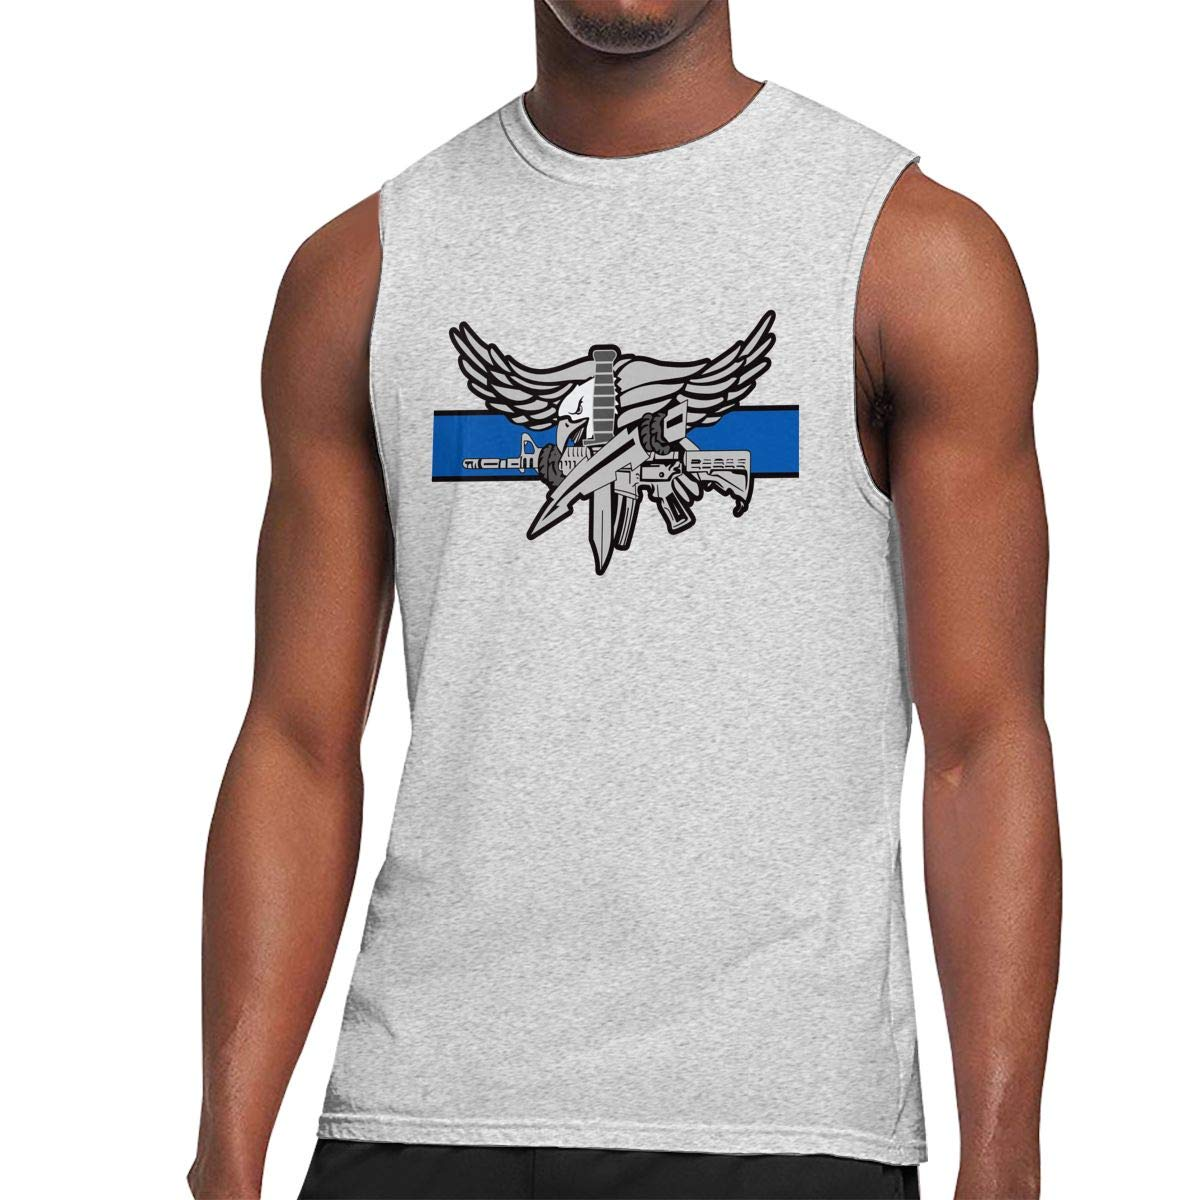 Police Swat Thin Blue Line Decal Mens Sleeveless Activewear Top Jersey